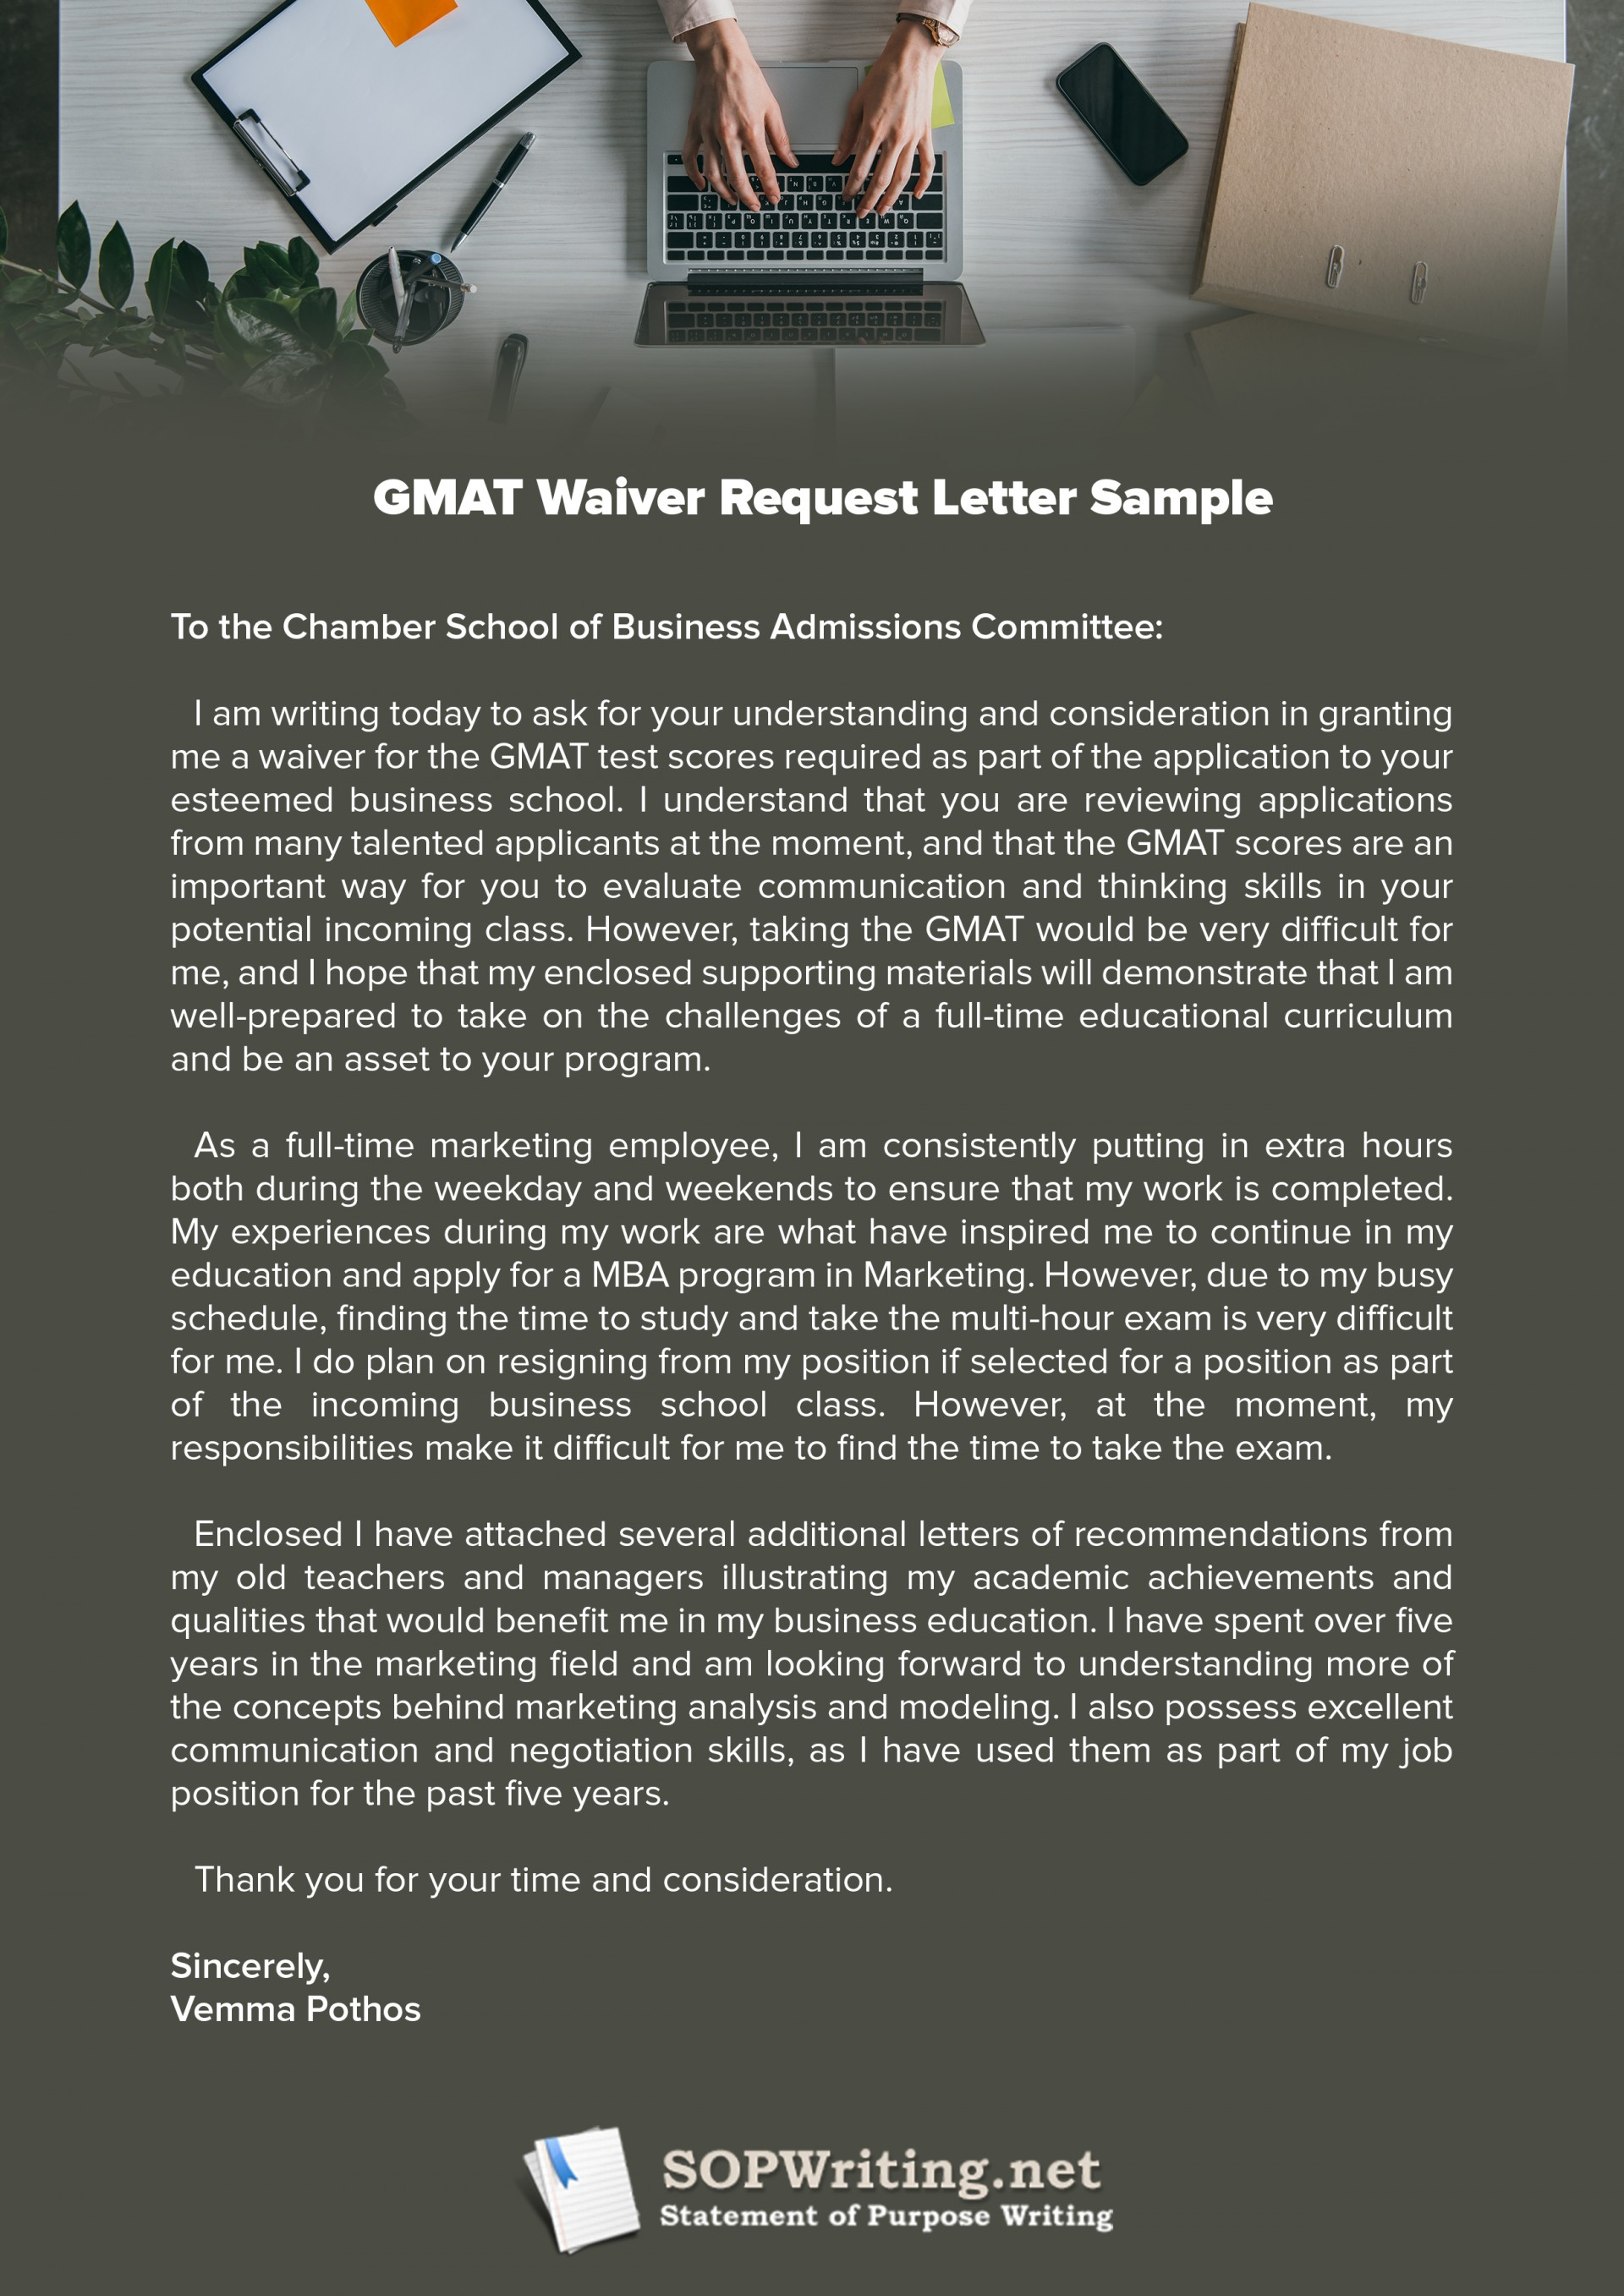 013 Essay Example Gmat Samples Coursework Writing Service Luhomeworkyrma Sample Analysis Of An Issue Waiver Request L Questions Awa Topics Free Application Pdf Shocking Essays Download 1920